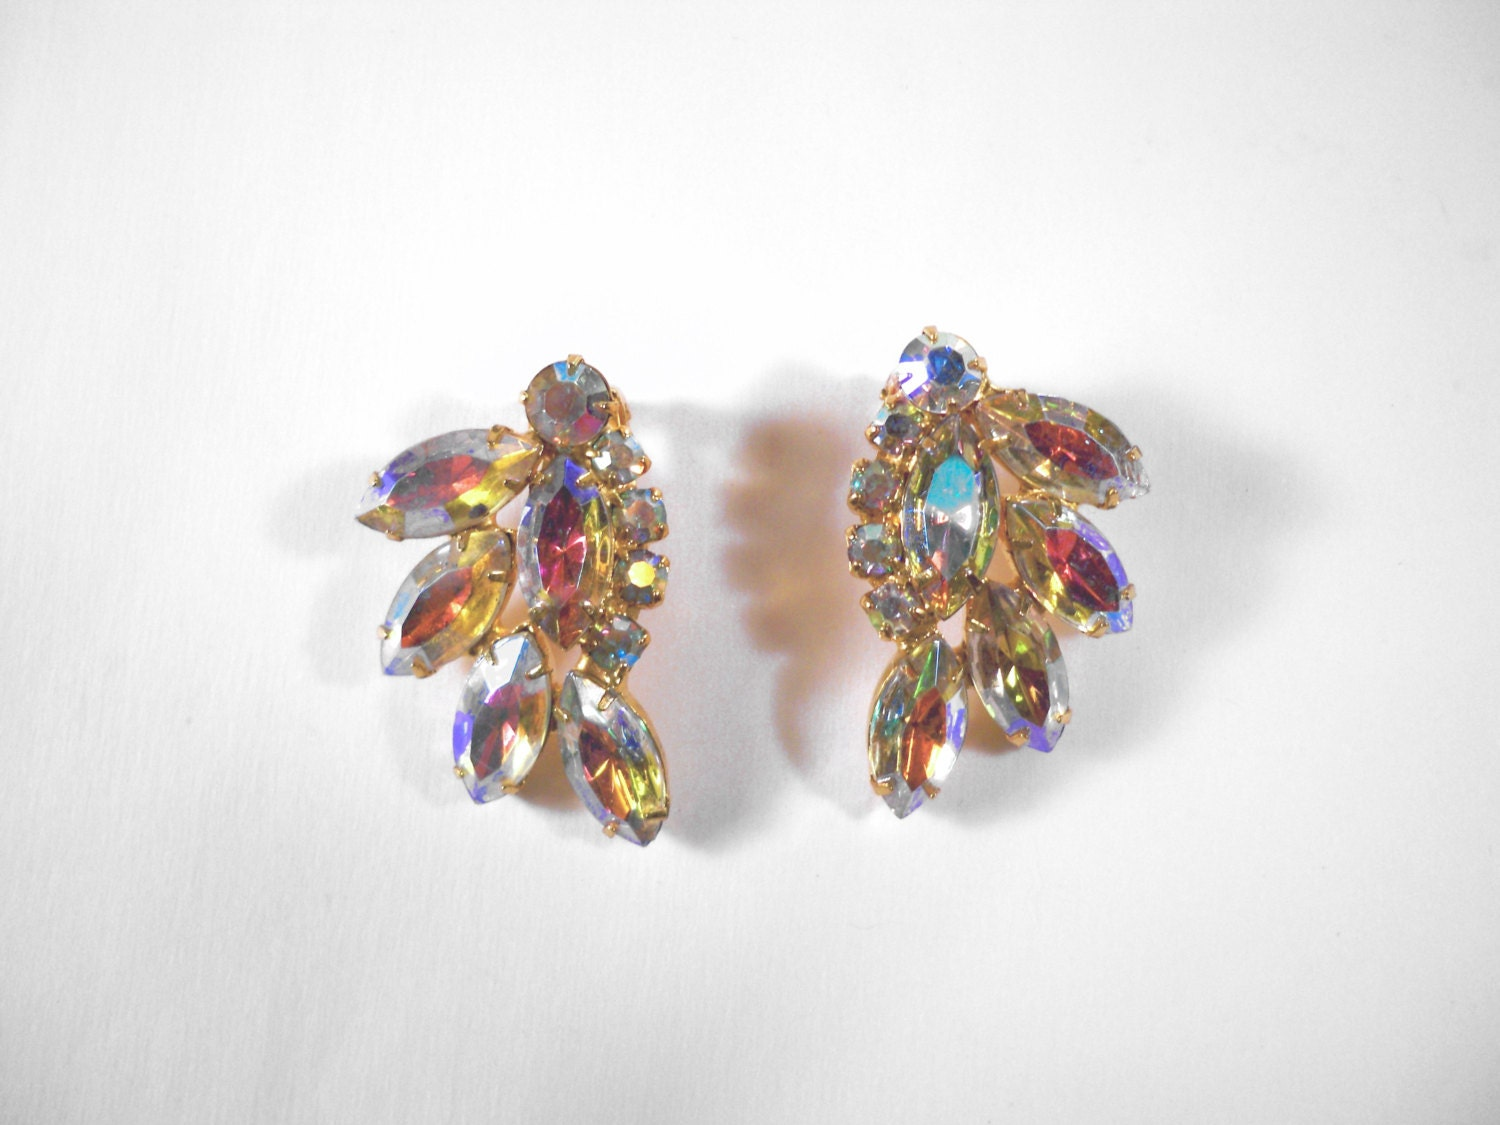 Vintage AB Rhinestone Clip Earrings U3116 Prom wedding